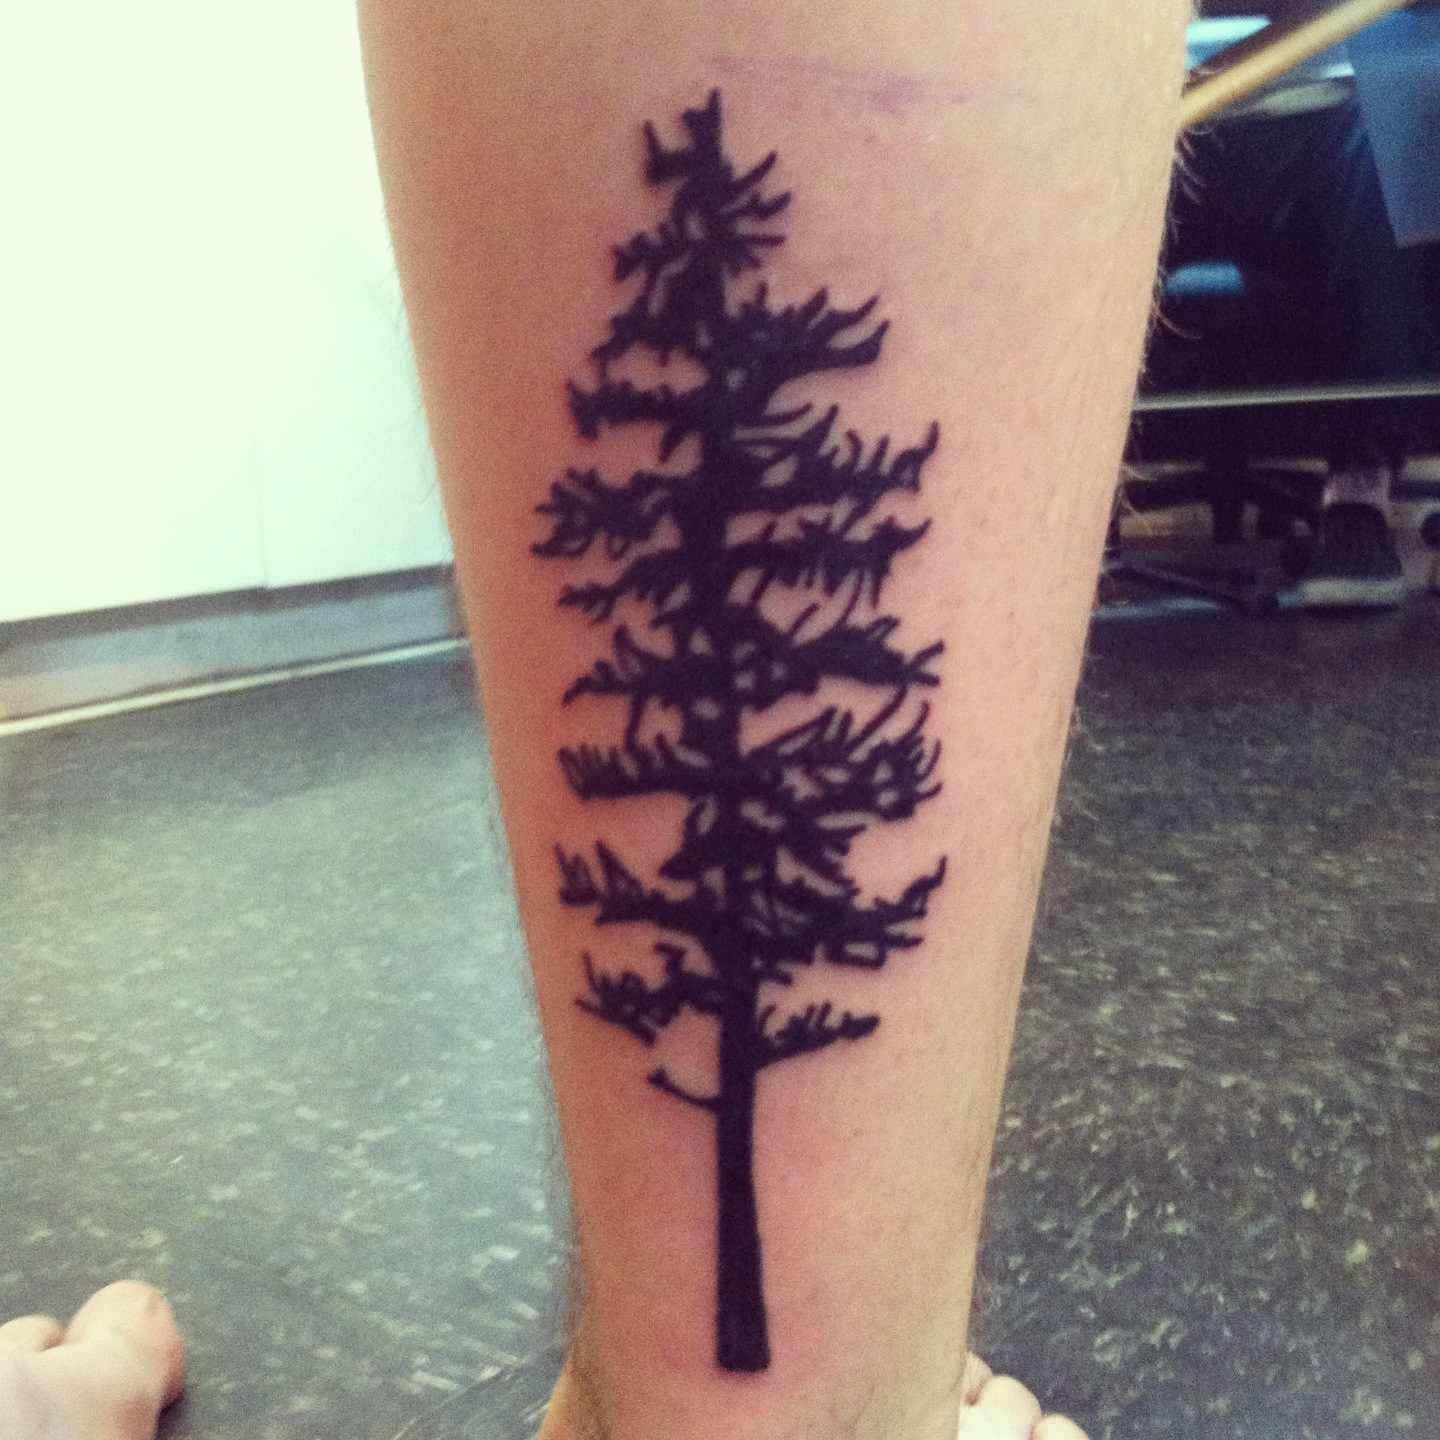 Tree tattoos designs ideas and meaning tattoos for you What is the meaning of tree